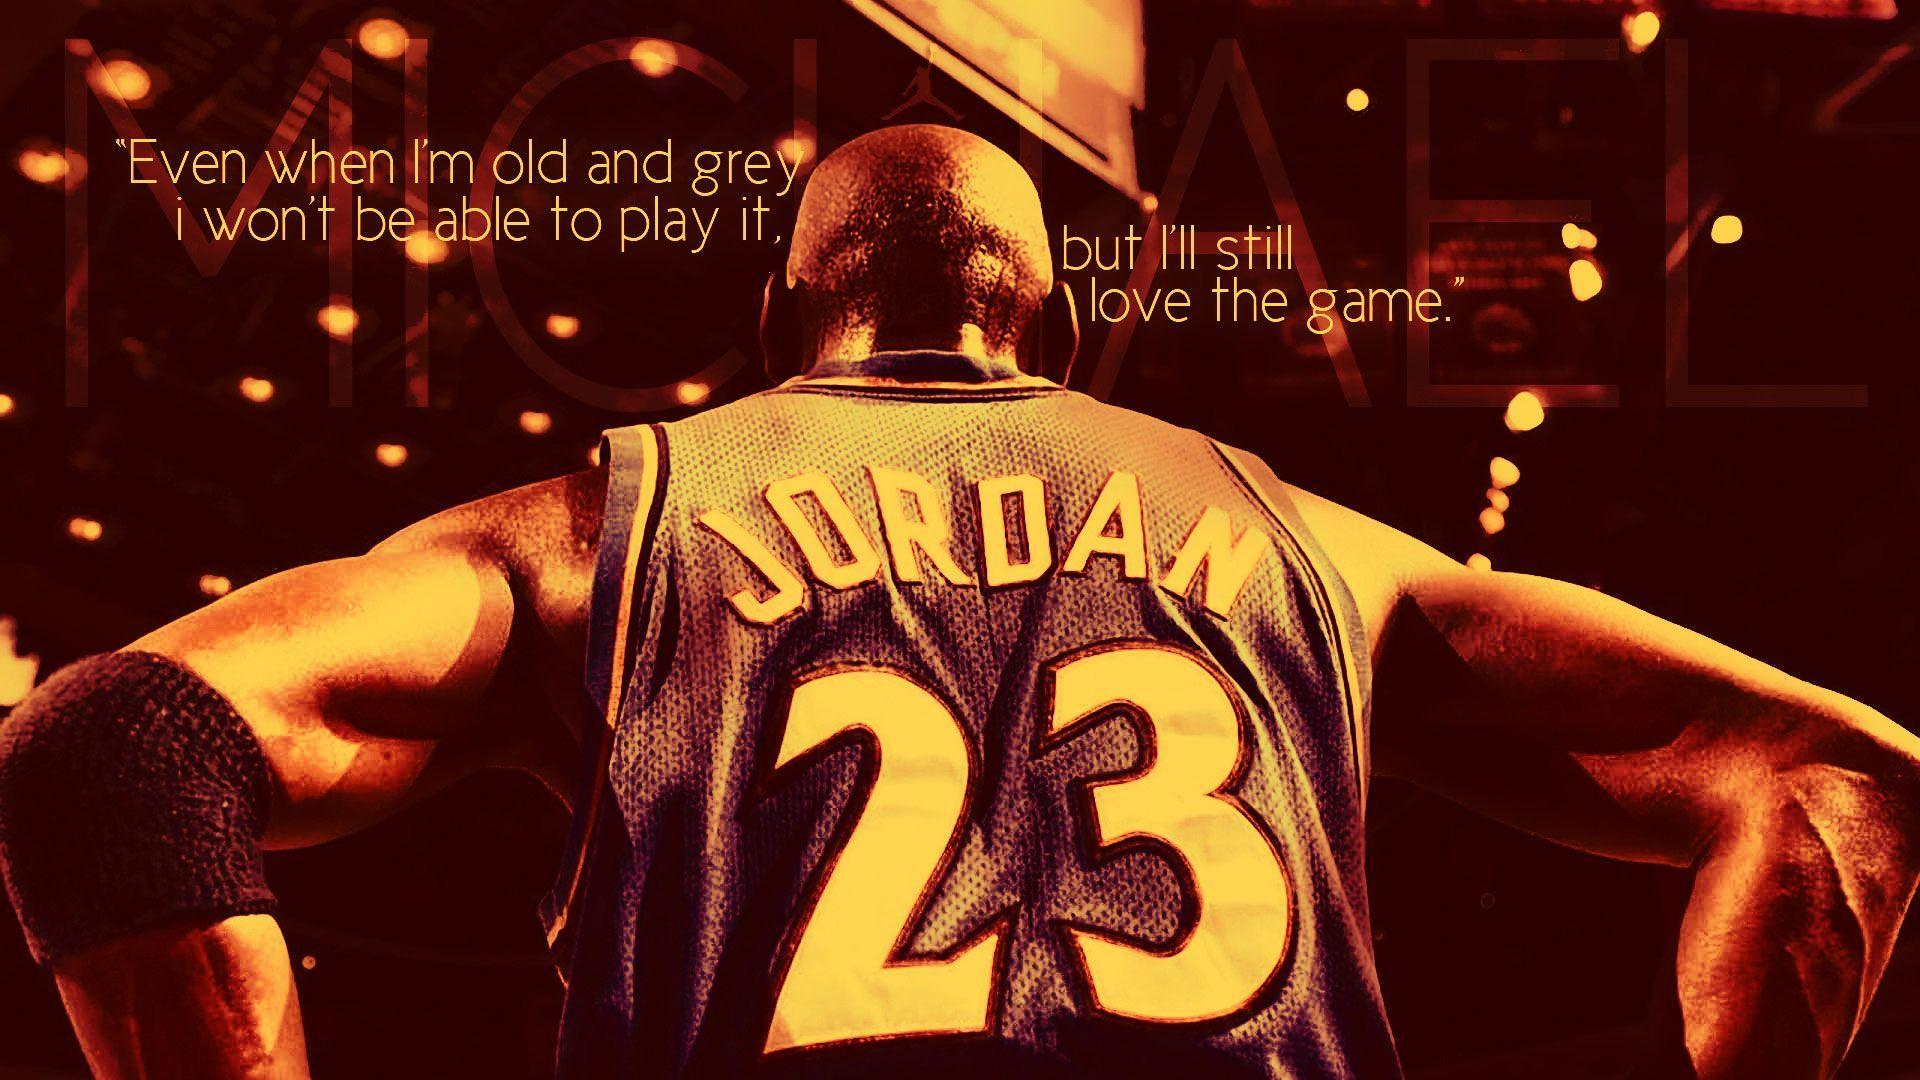 Michael Jordan Quotes Wallpapers Hd Widescreen 2 HD Wallpapers